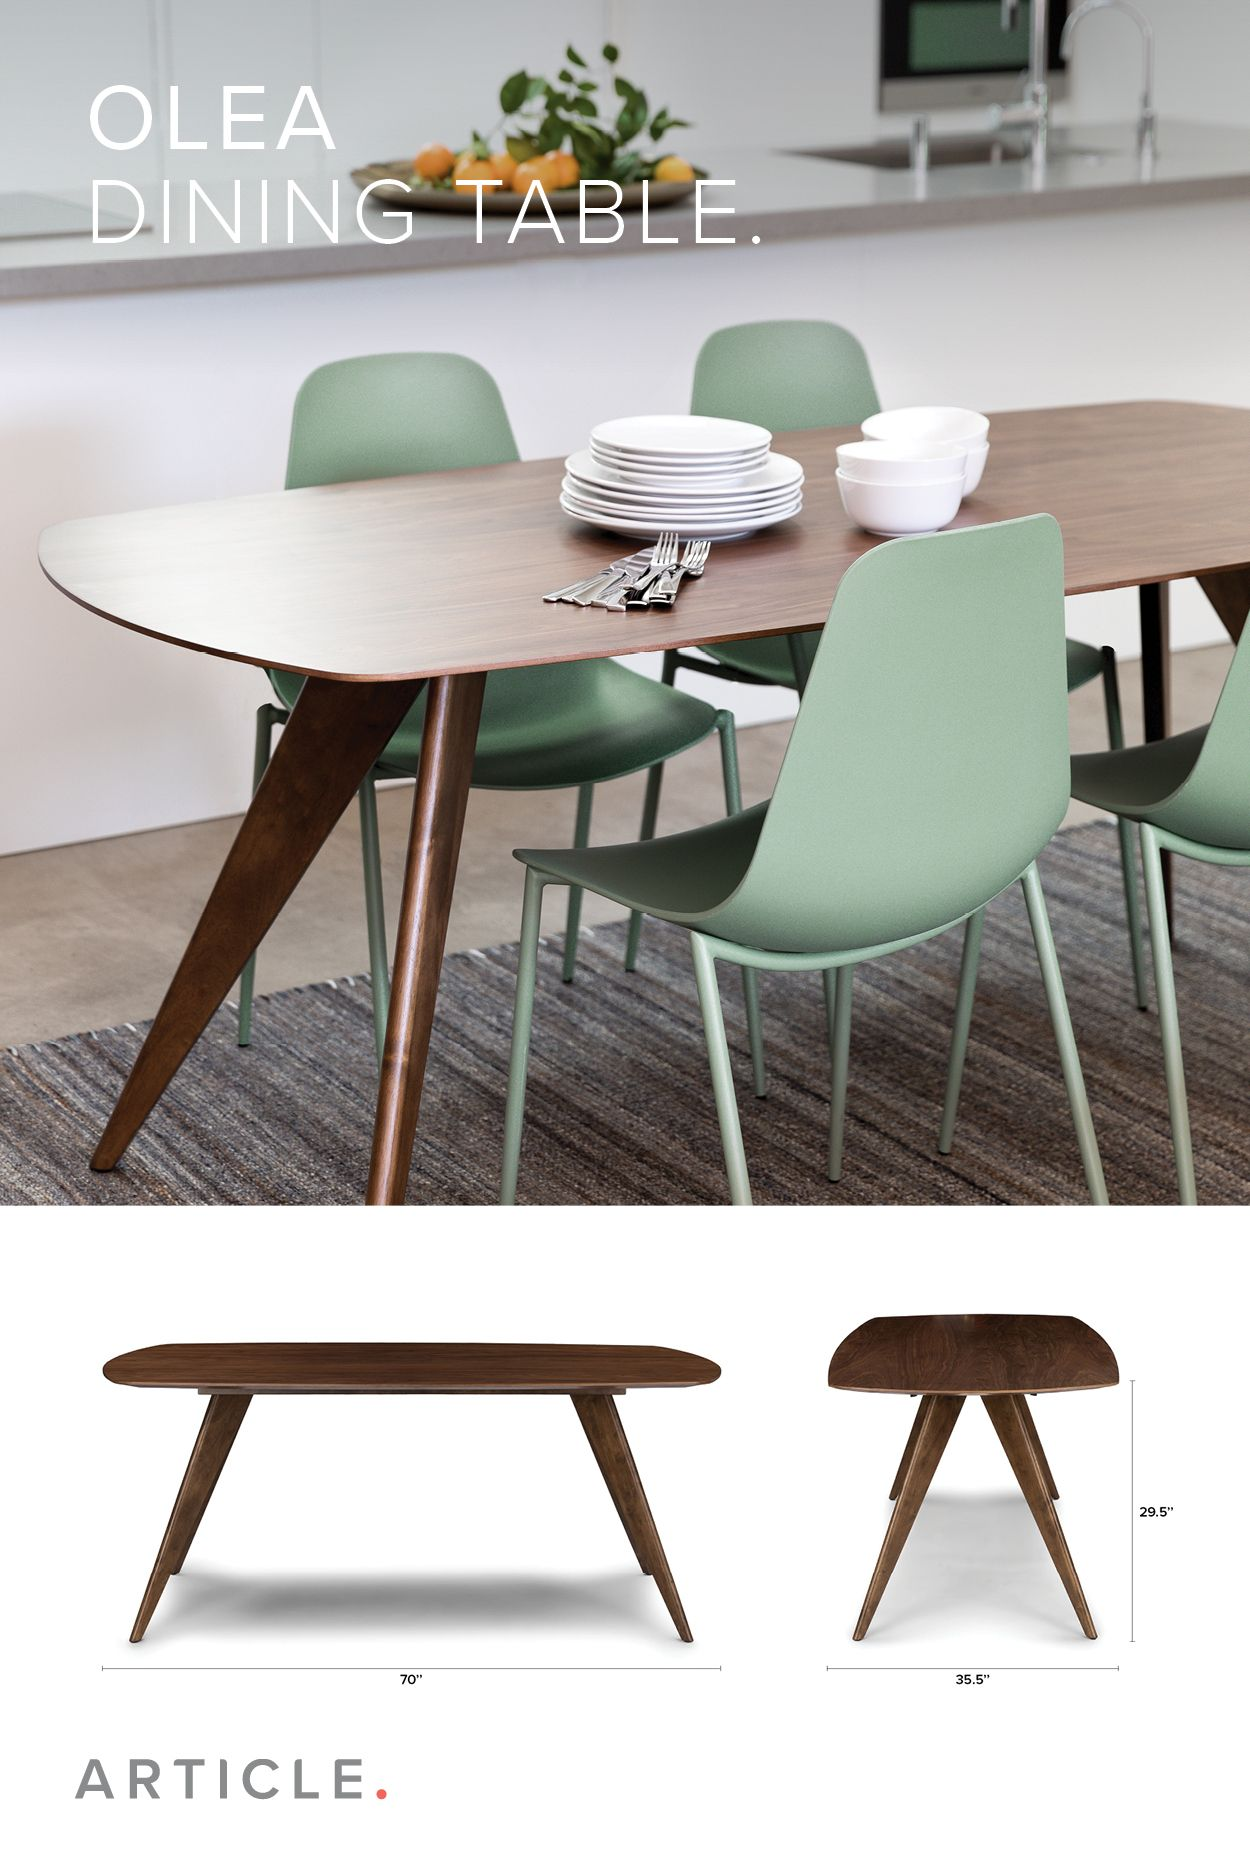 Olea Dining Table Mid Century Style Dining Table Dining Table